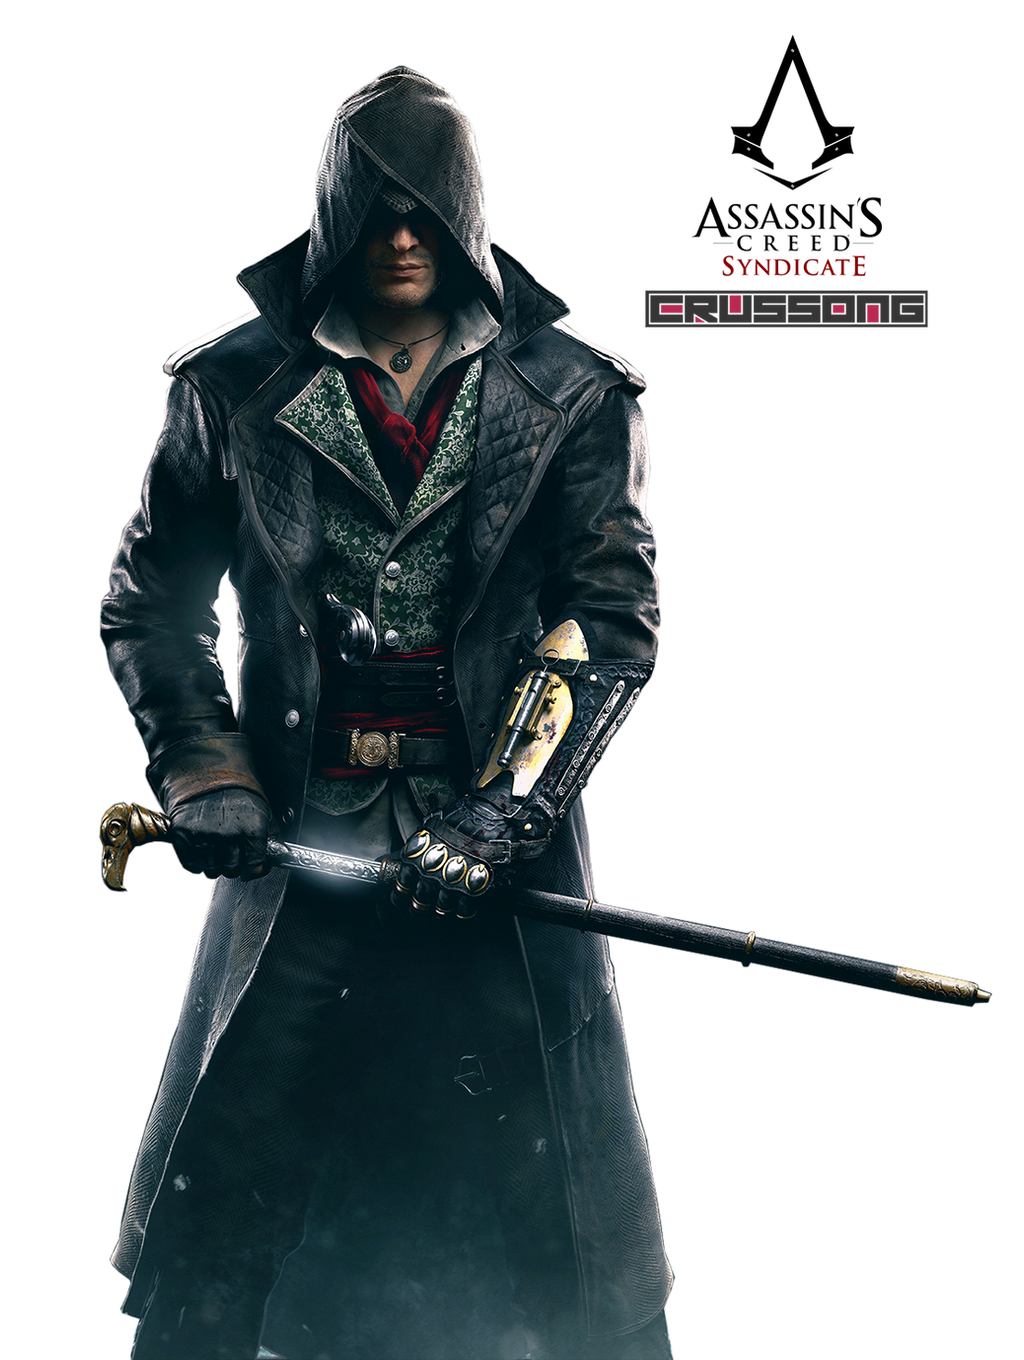 Assassin S Creed Syndicate Jacob Frye Render By Crussong On